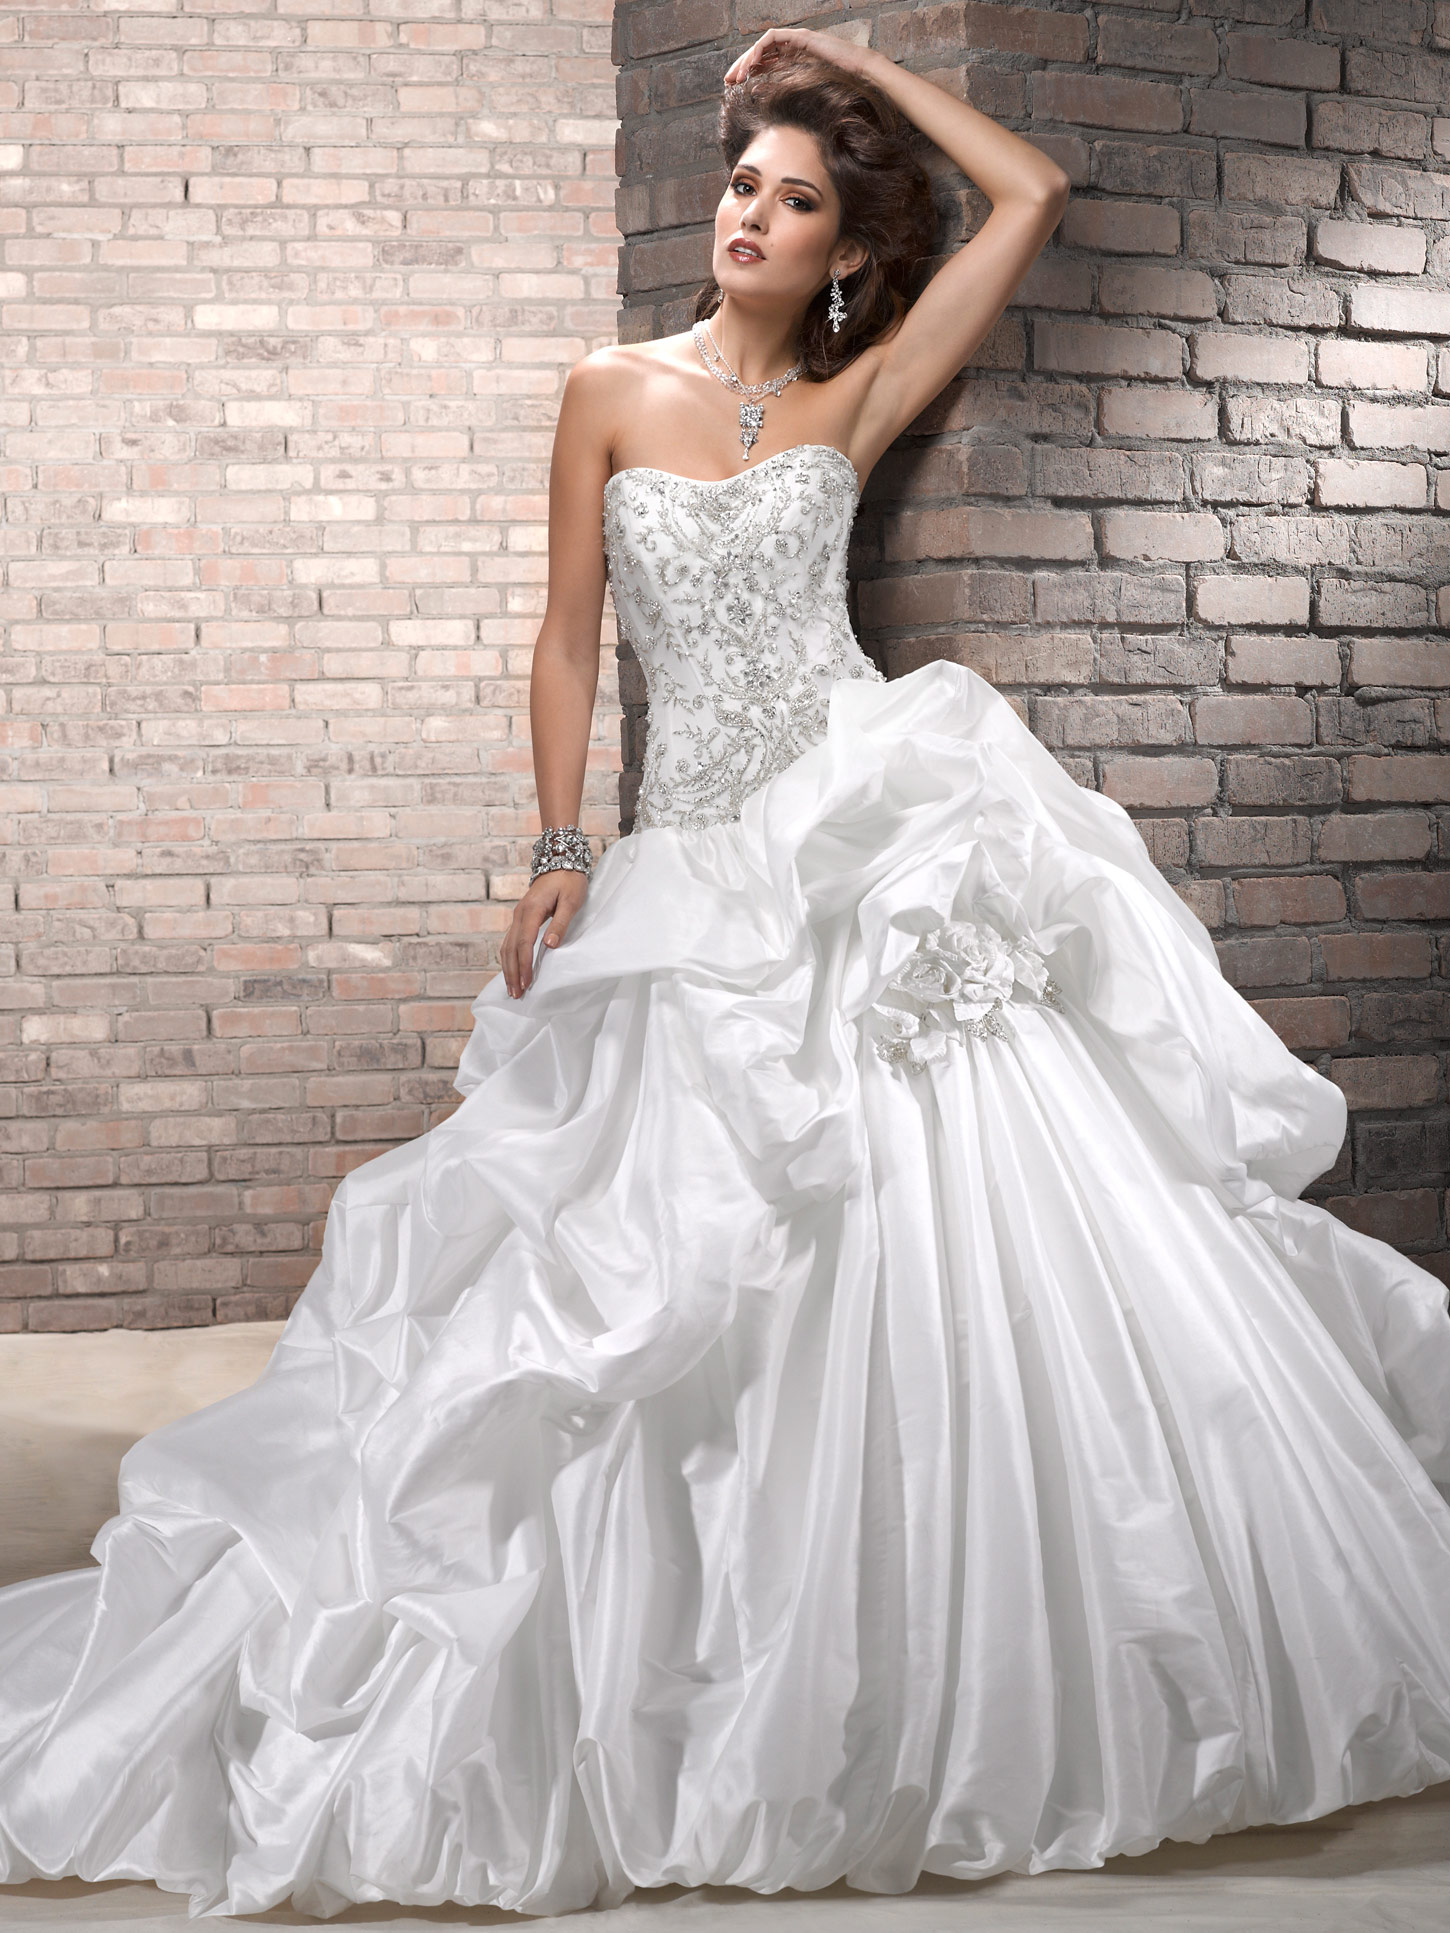 What will your future wedding dress look like? | Playbuzz